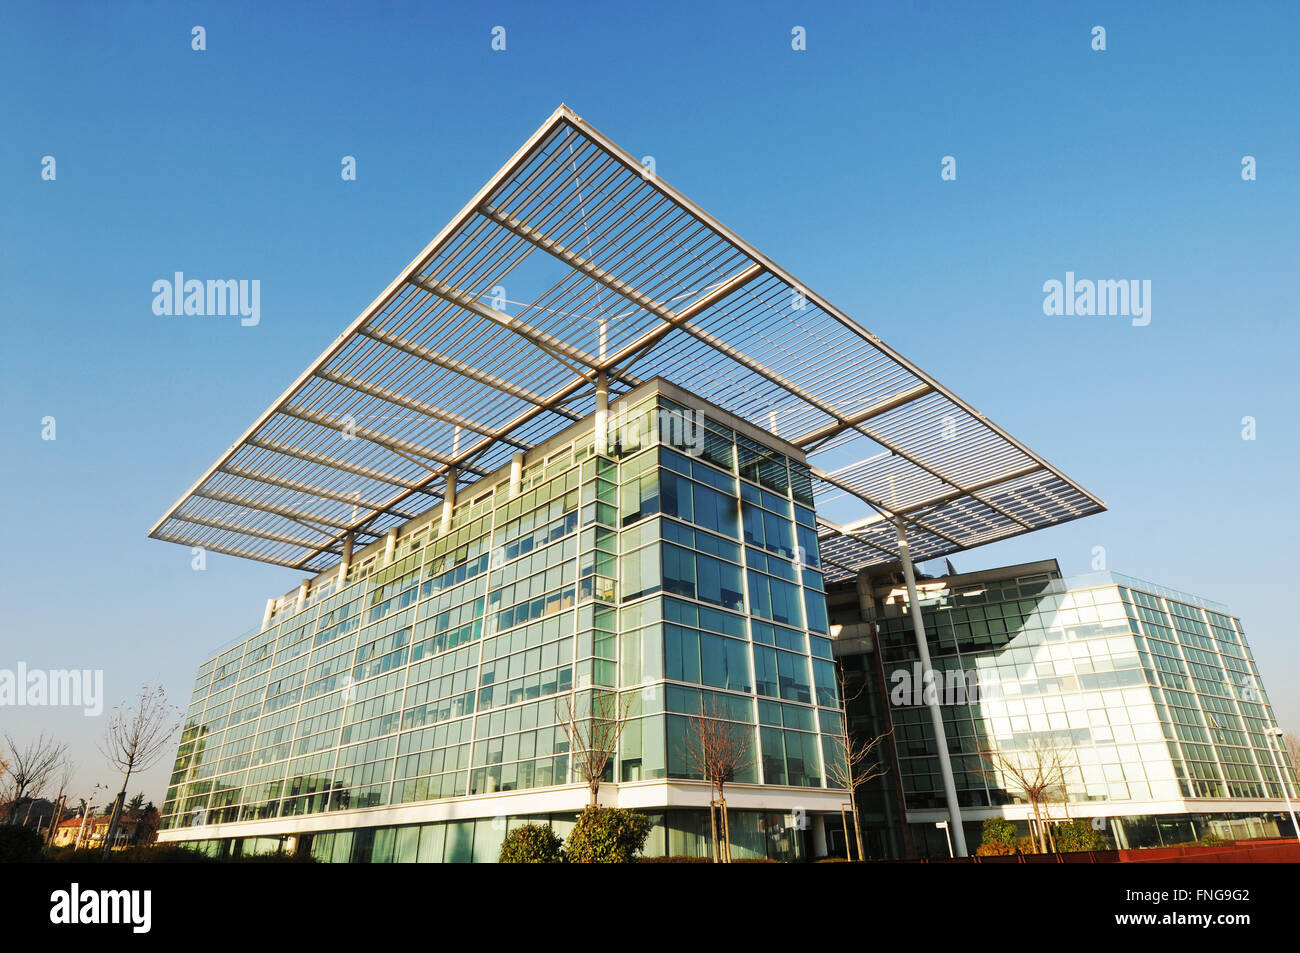 Europe Italy Lombardy Milan Pero Perseo Expo Disstrict 2015 Il sole 24 ore district designed by Goring & Staja - Stock Image